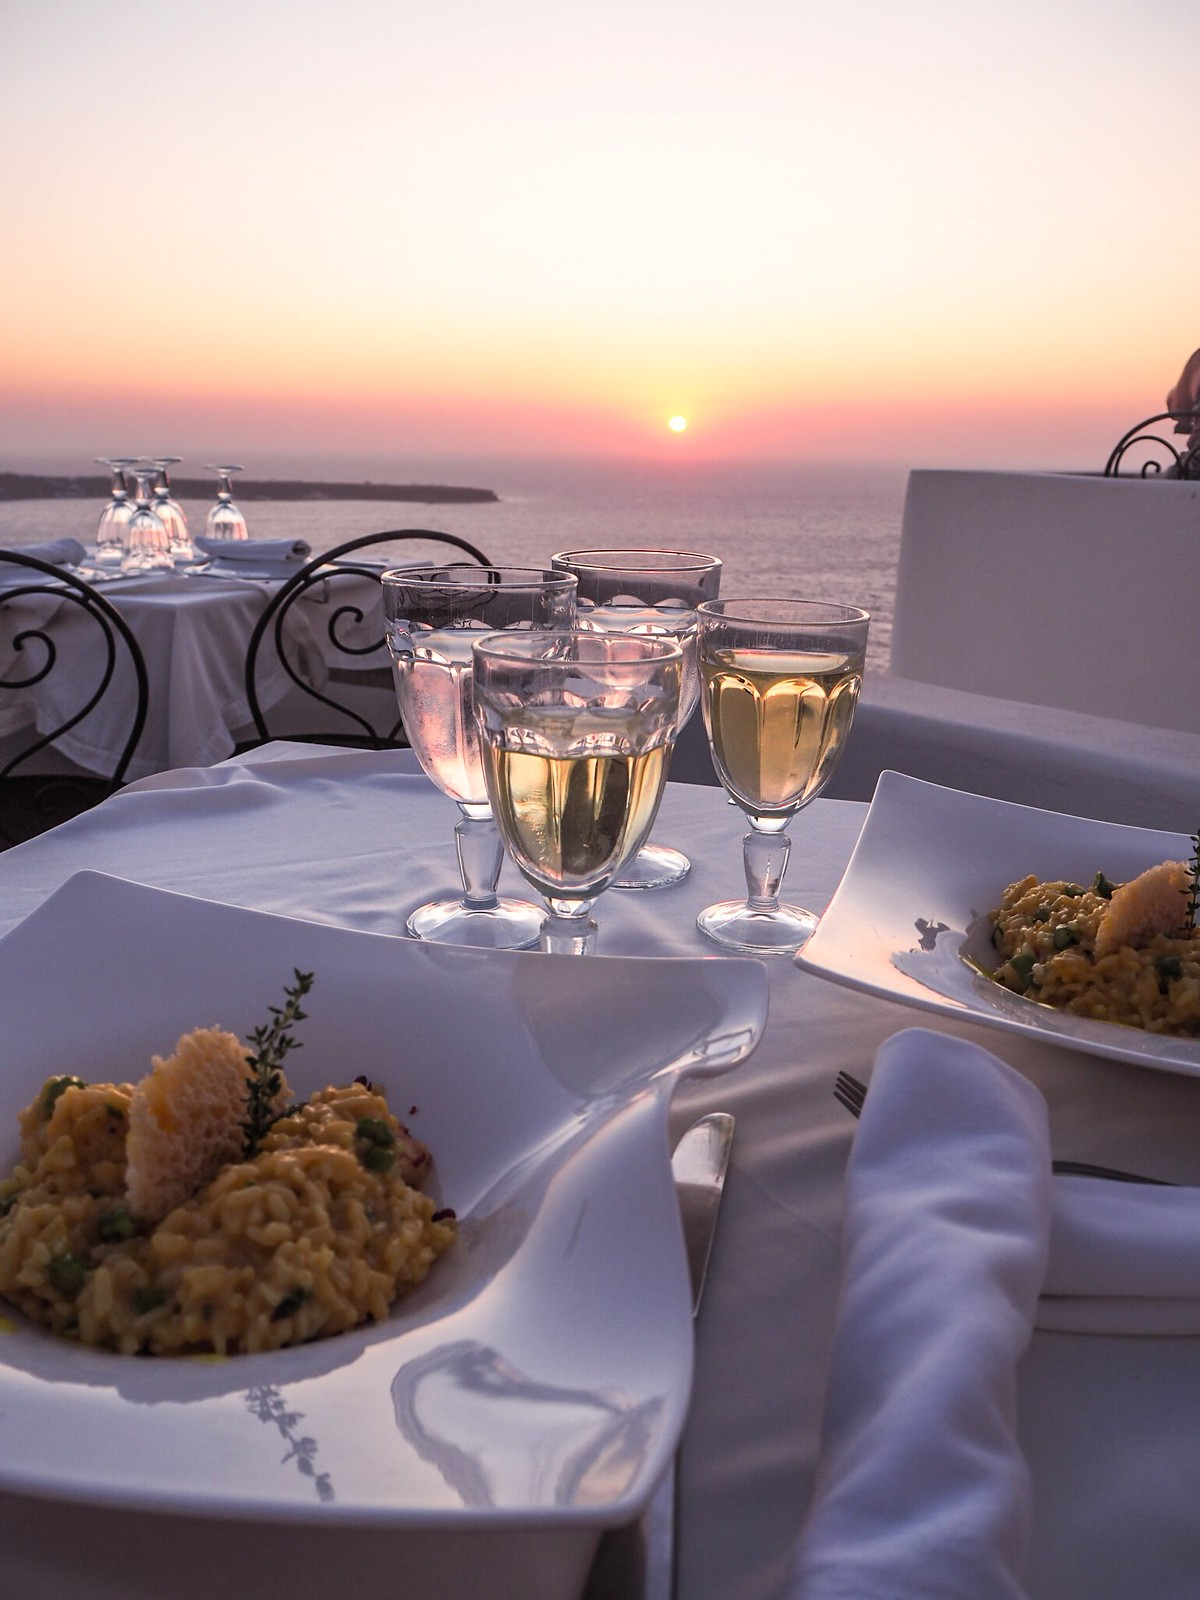 Sunset restaurant in Oia